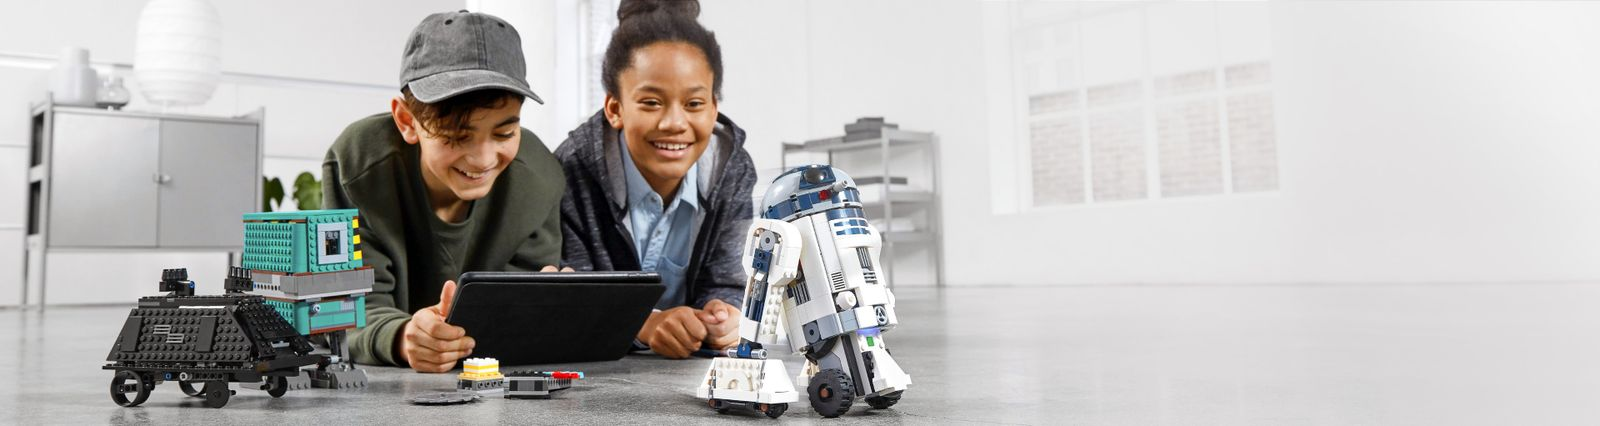 Legocom Us Inspire And Develop The Builders Of Tomorrow